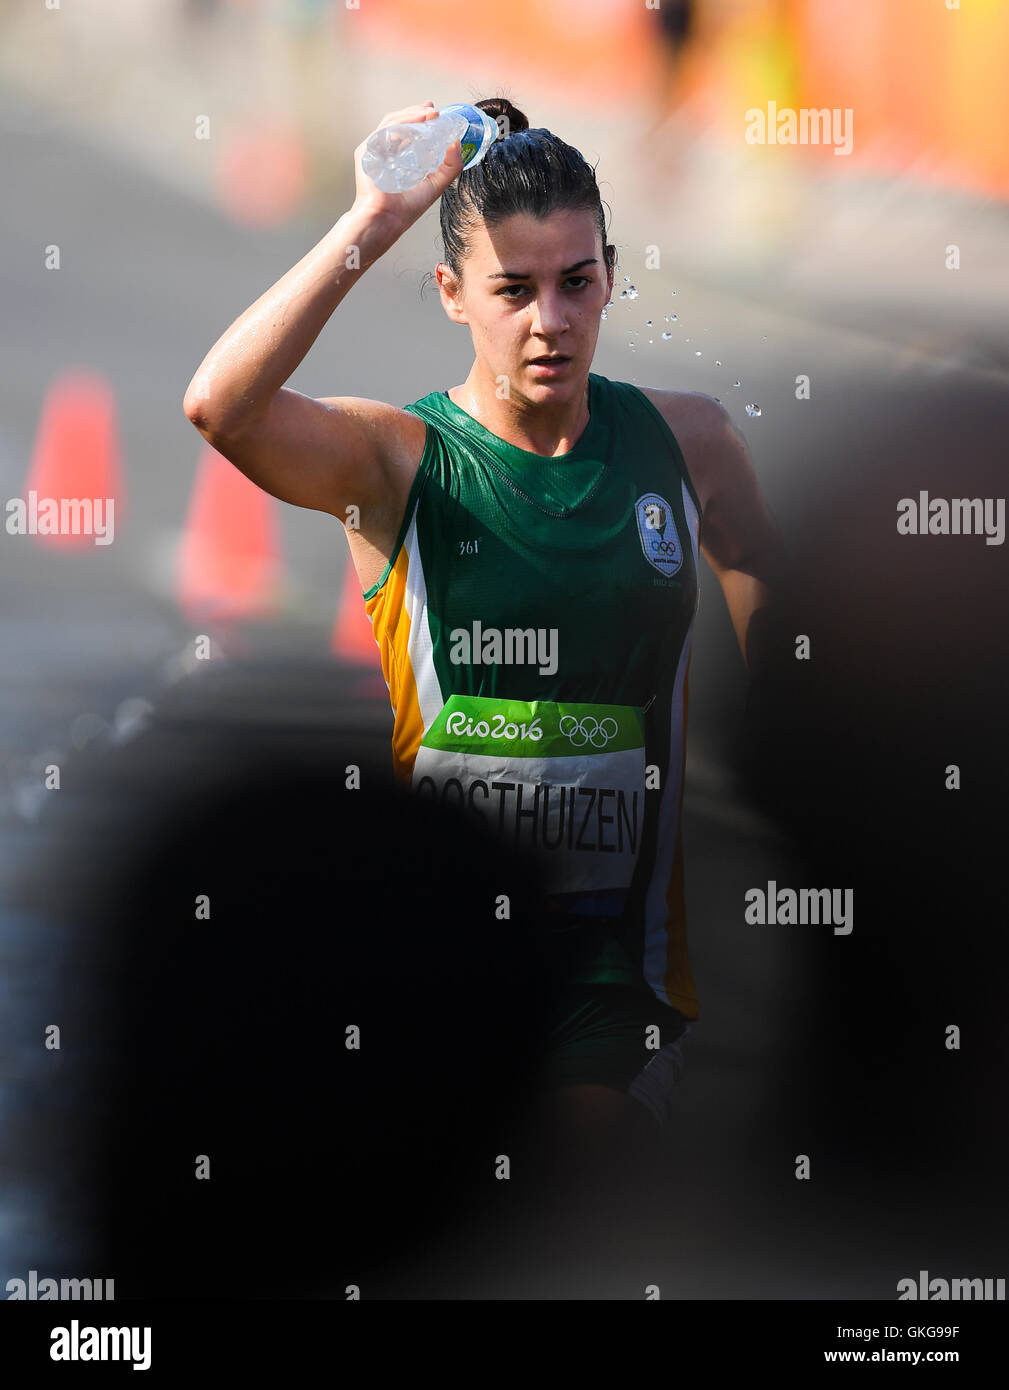 Rio de Janeiro, Brazil. 19th August, 2016. Anel Oosthuizen of South Africa during the womens 20km race walk on Day 14 of the 2016 Rio Olympics at Pontal on August 19, 2016 in Rio de Janeiro, Brazil. (Photo by Roger Sedres/Gallo Images) Credit:  Roger Sedres/Alamy Live News Stock Photo